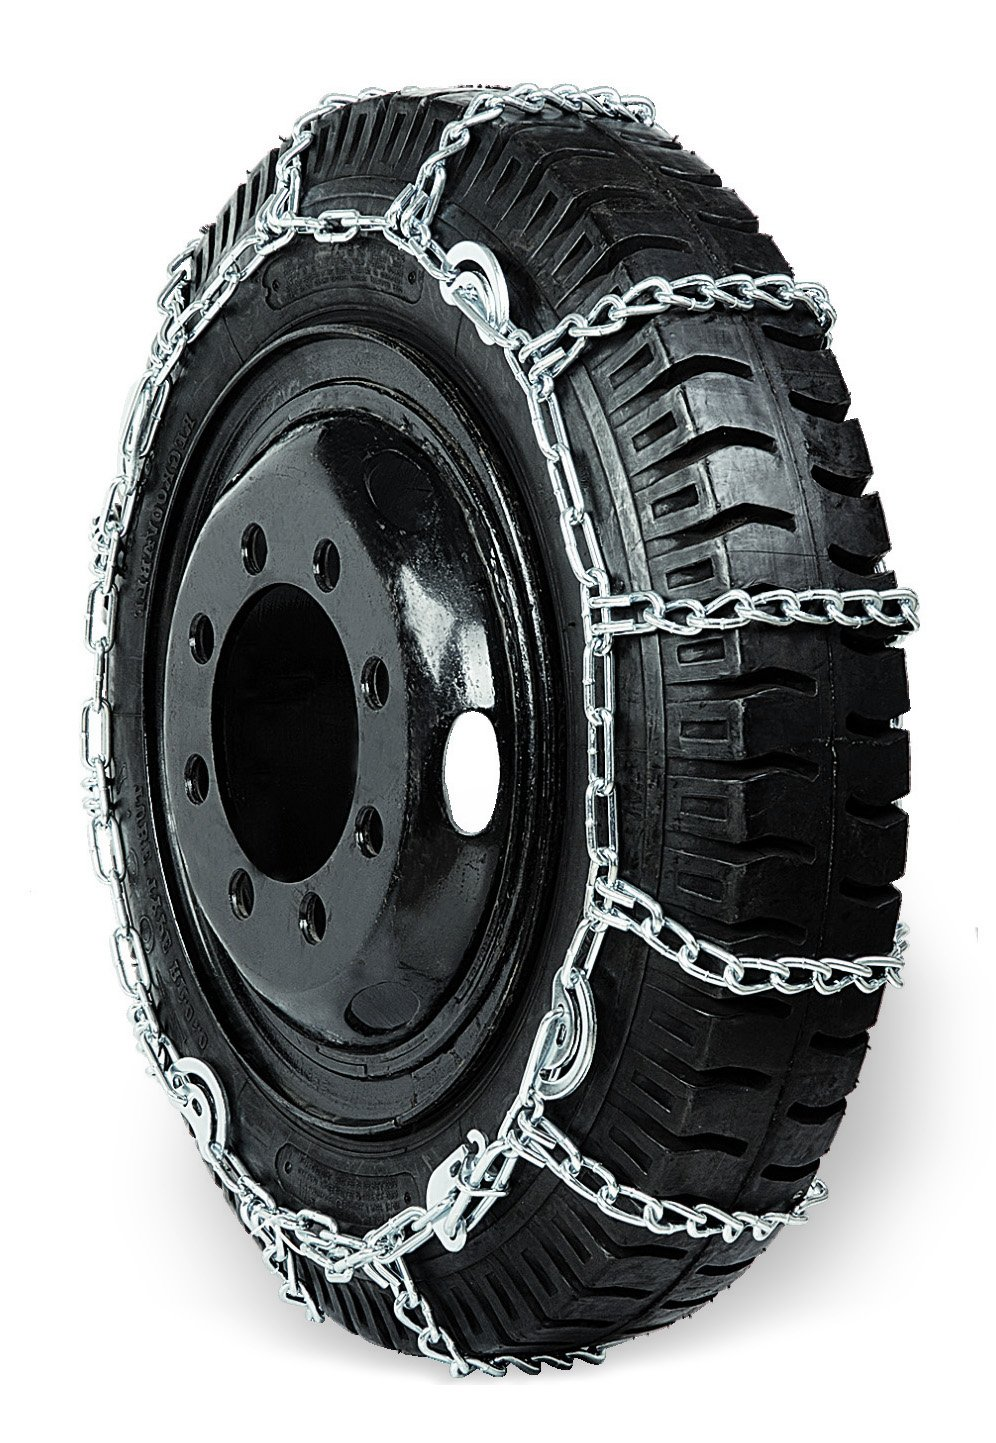 Grizzlar GSL-3210CAM Alloy Light Truck Wide Base CAM Link Chains 29x10.50-15LT 30x9.50-15LT 30x9.50-16.5LT 30x10.50-15LT 265/70-15 LT265/70-15 265/70-16 LT265/70-16 265/75-15 LT265/75-15